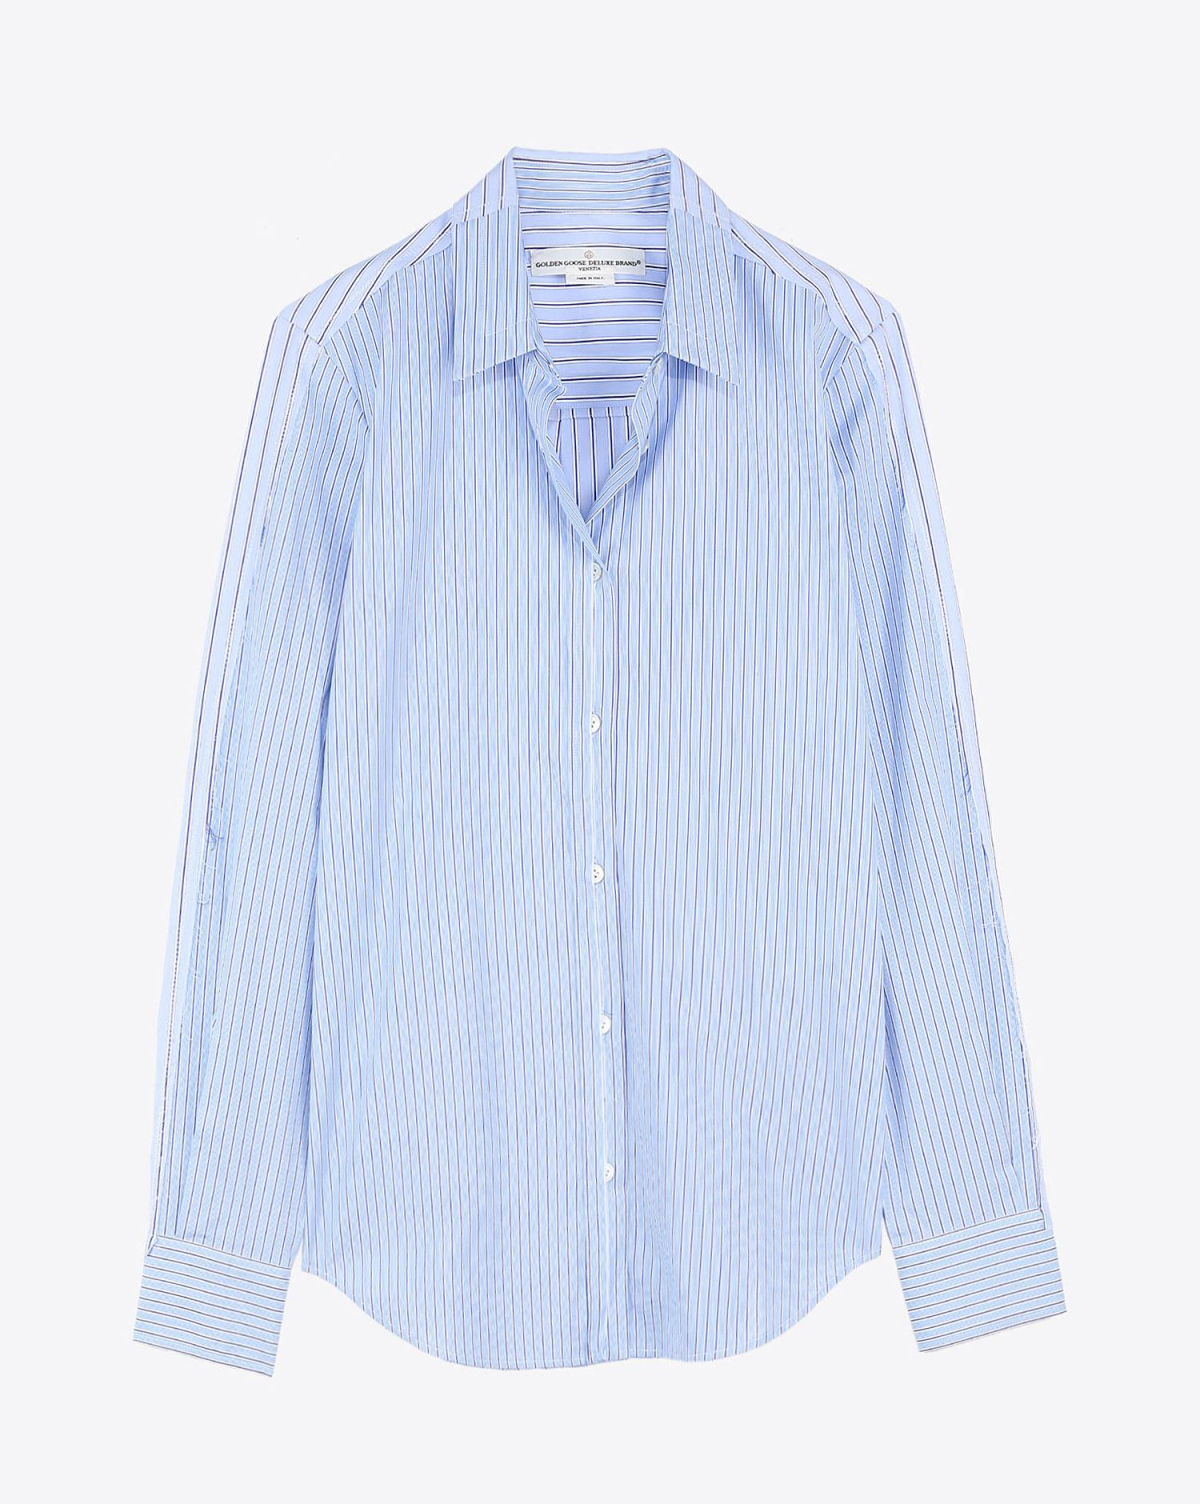 Golden Goose Vêtements Pré-Collection Shirt Golden - Light Blue Stripes